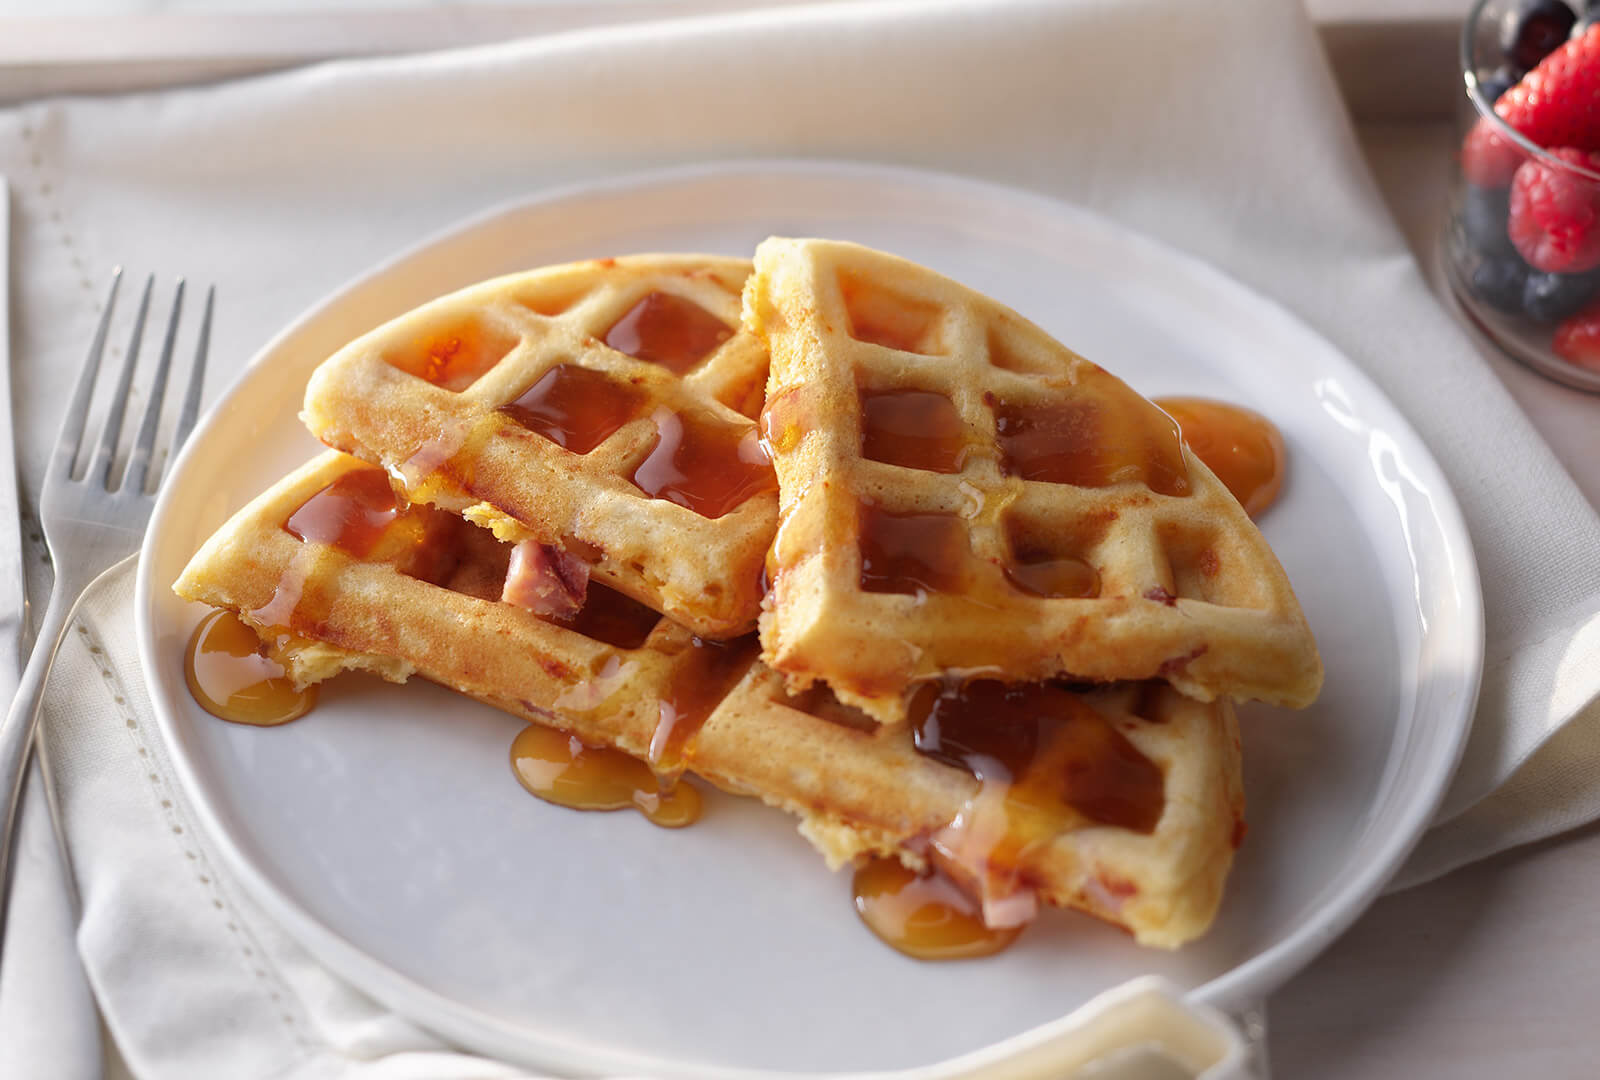 Savory Ham and Cheddar Waffles covered in maple syrup on a white plate